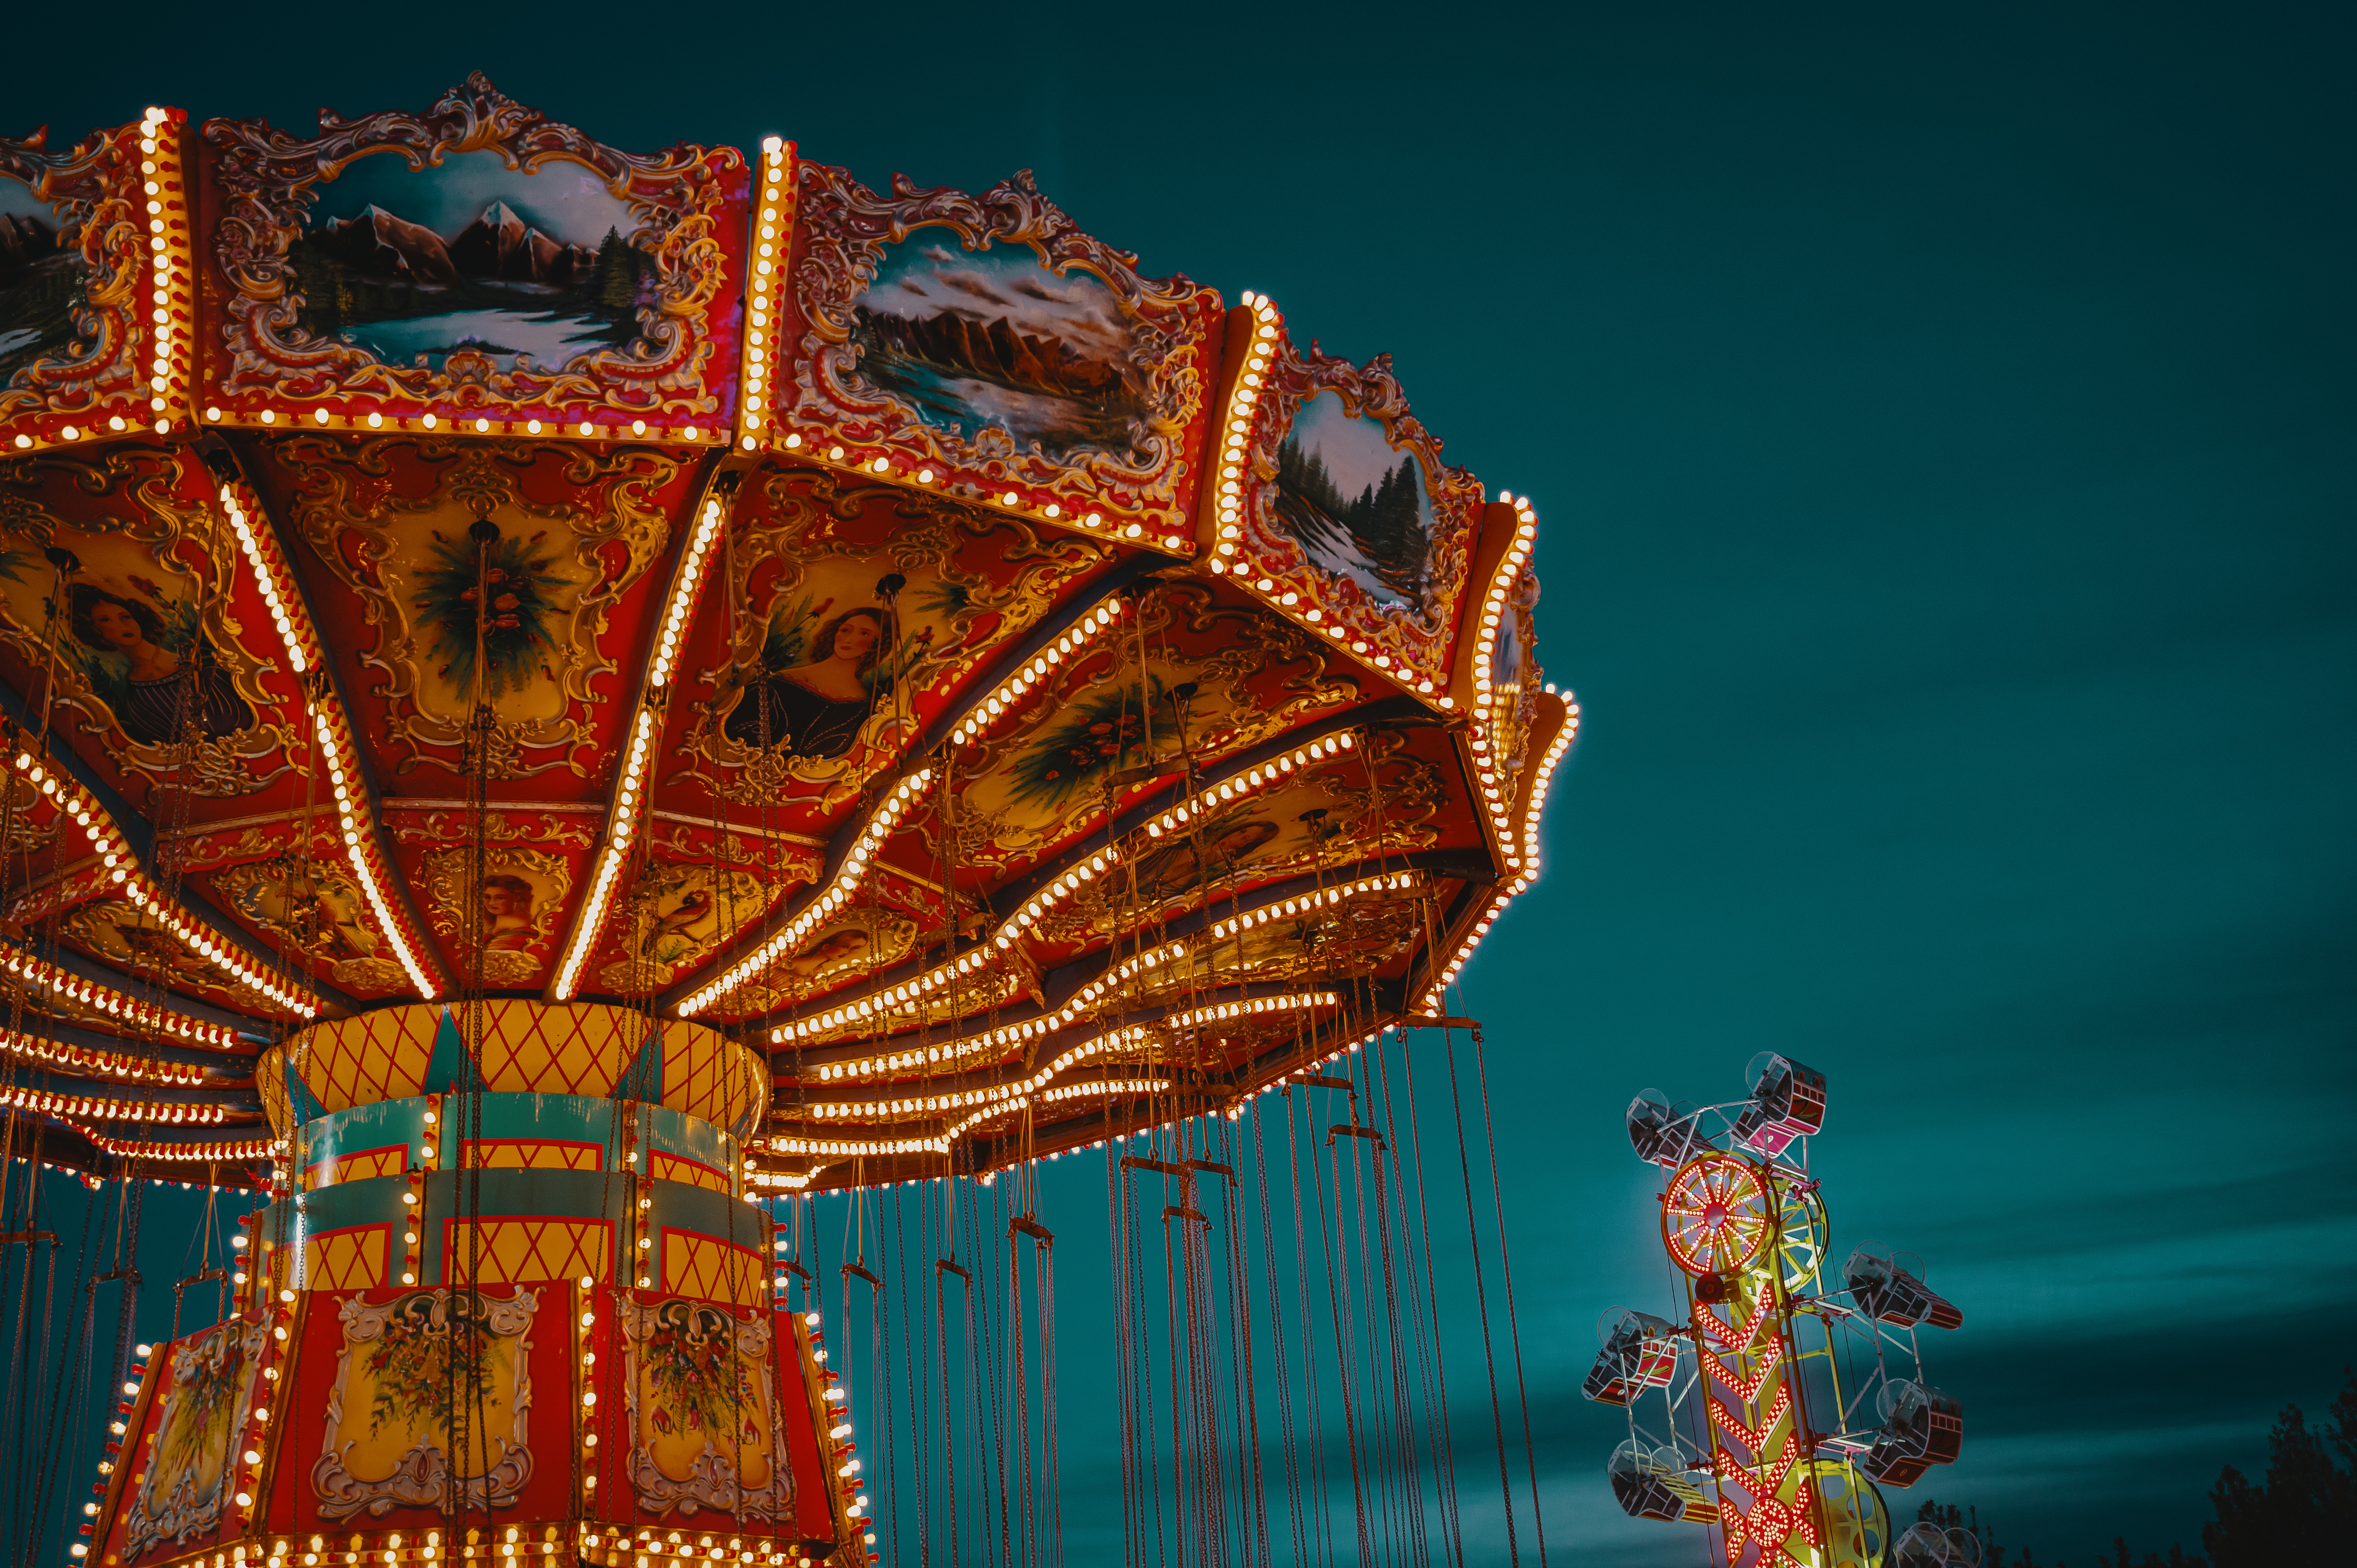 Brown and Red Lighted Carousel